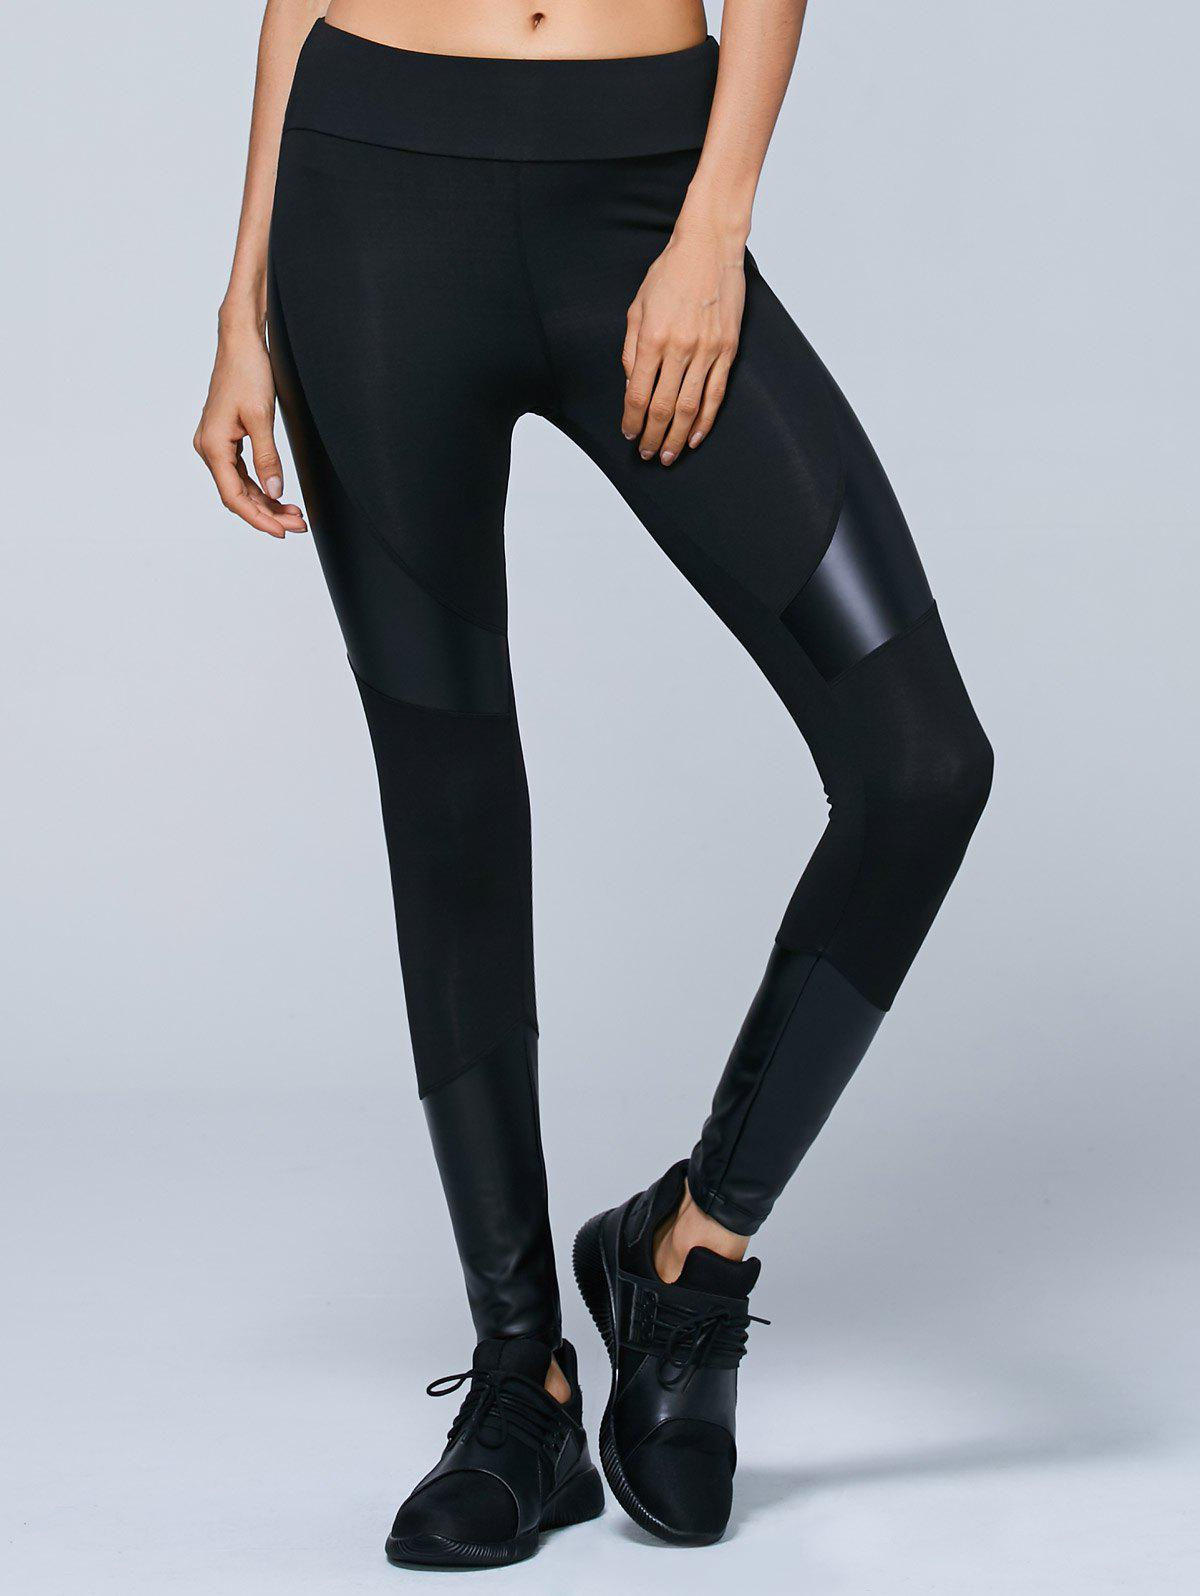 An edgy pair of alice + olivia leggings are accented with soft leather panels for a hit of rock glamour. An exposed front zip finishes the silhouette with a sleek fit. An .